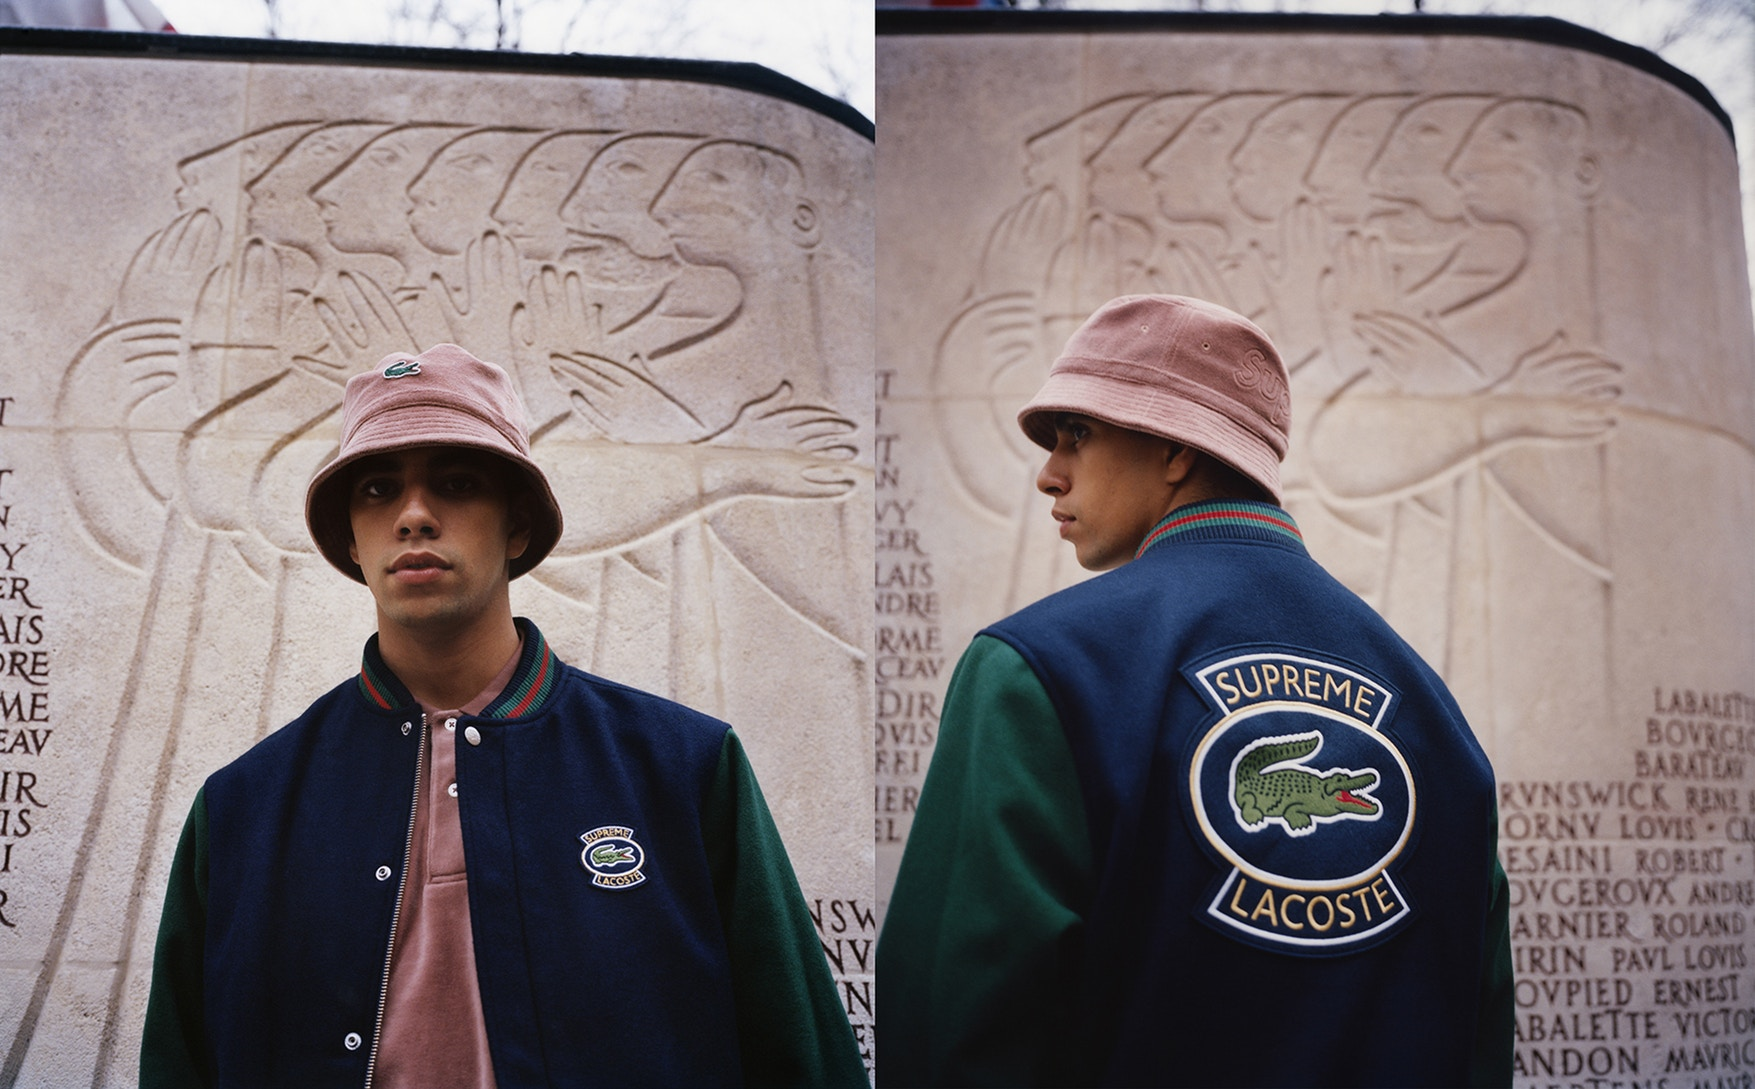 Supreme x Lacoste Spring/Summer 2018 Collection